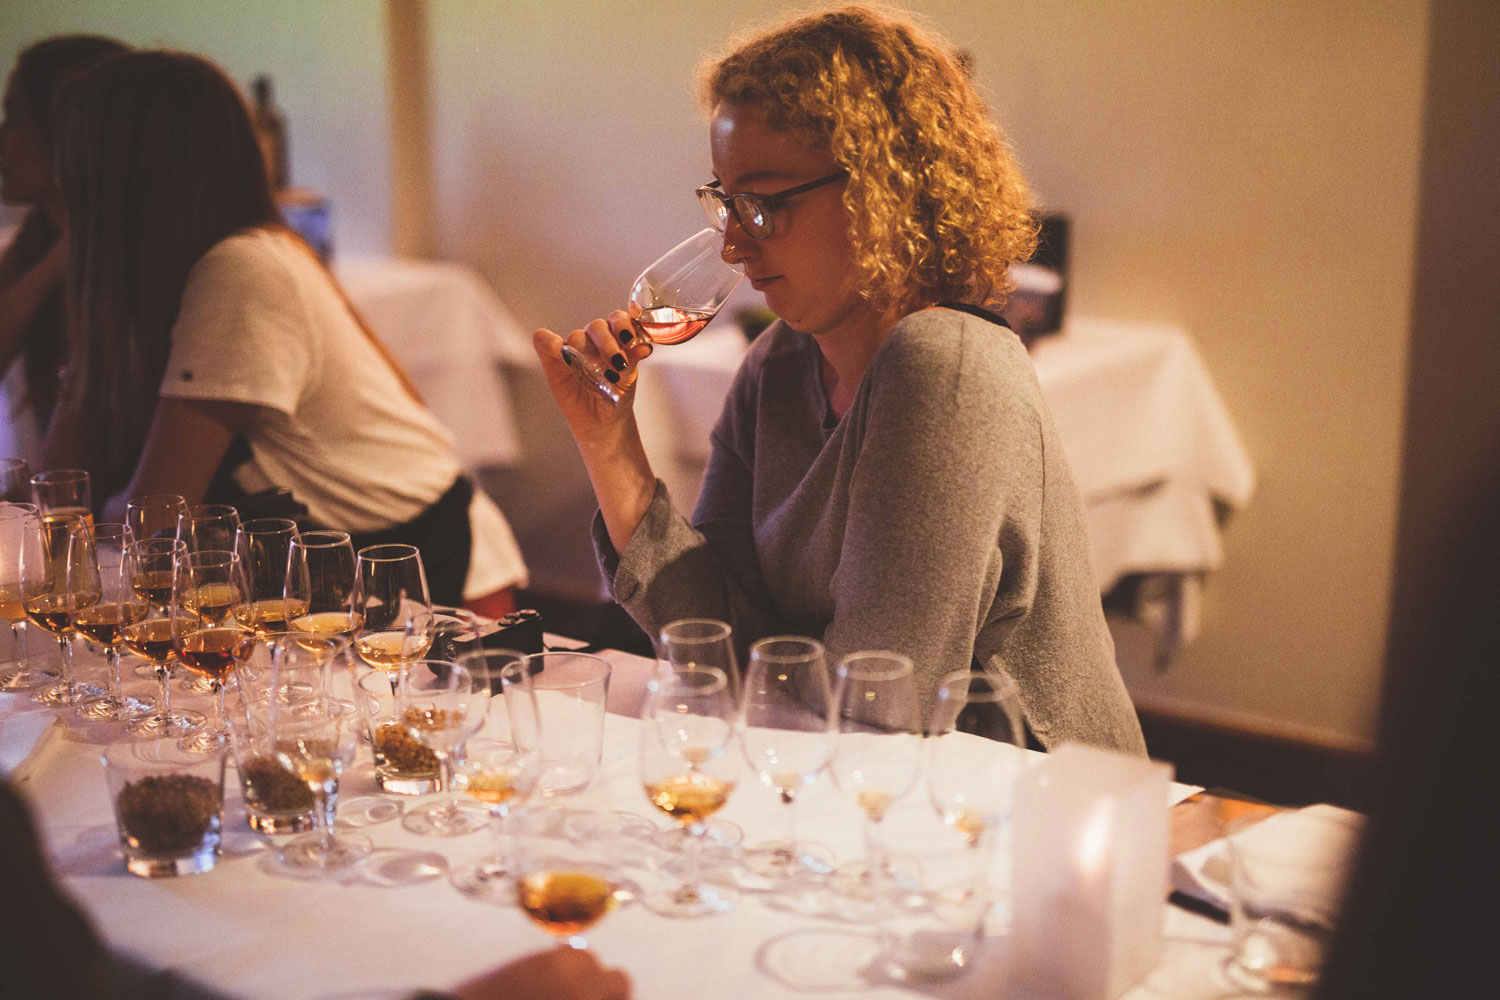 Whisky Tasting Anleitung